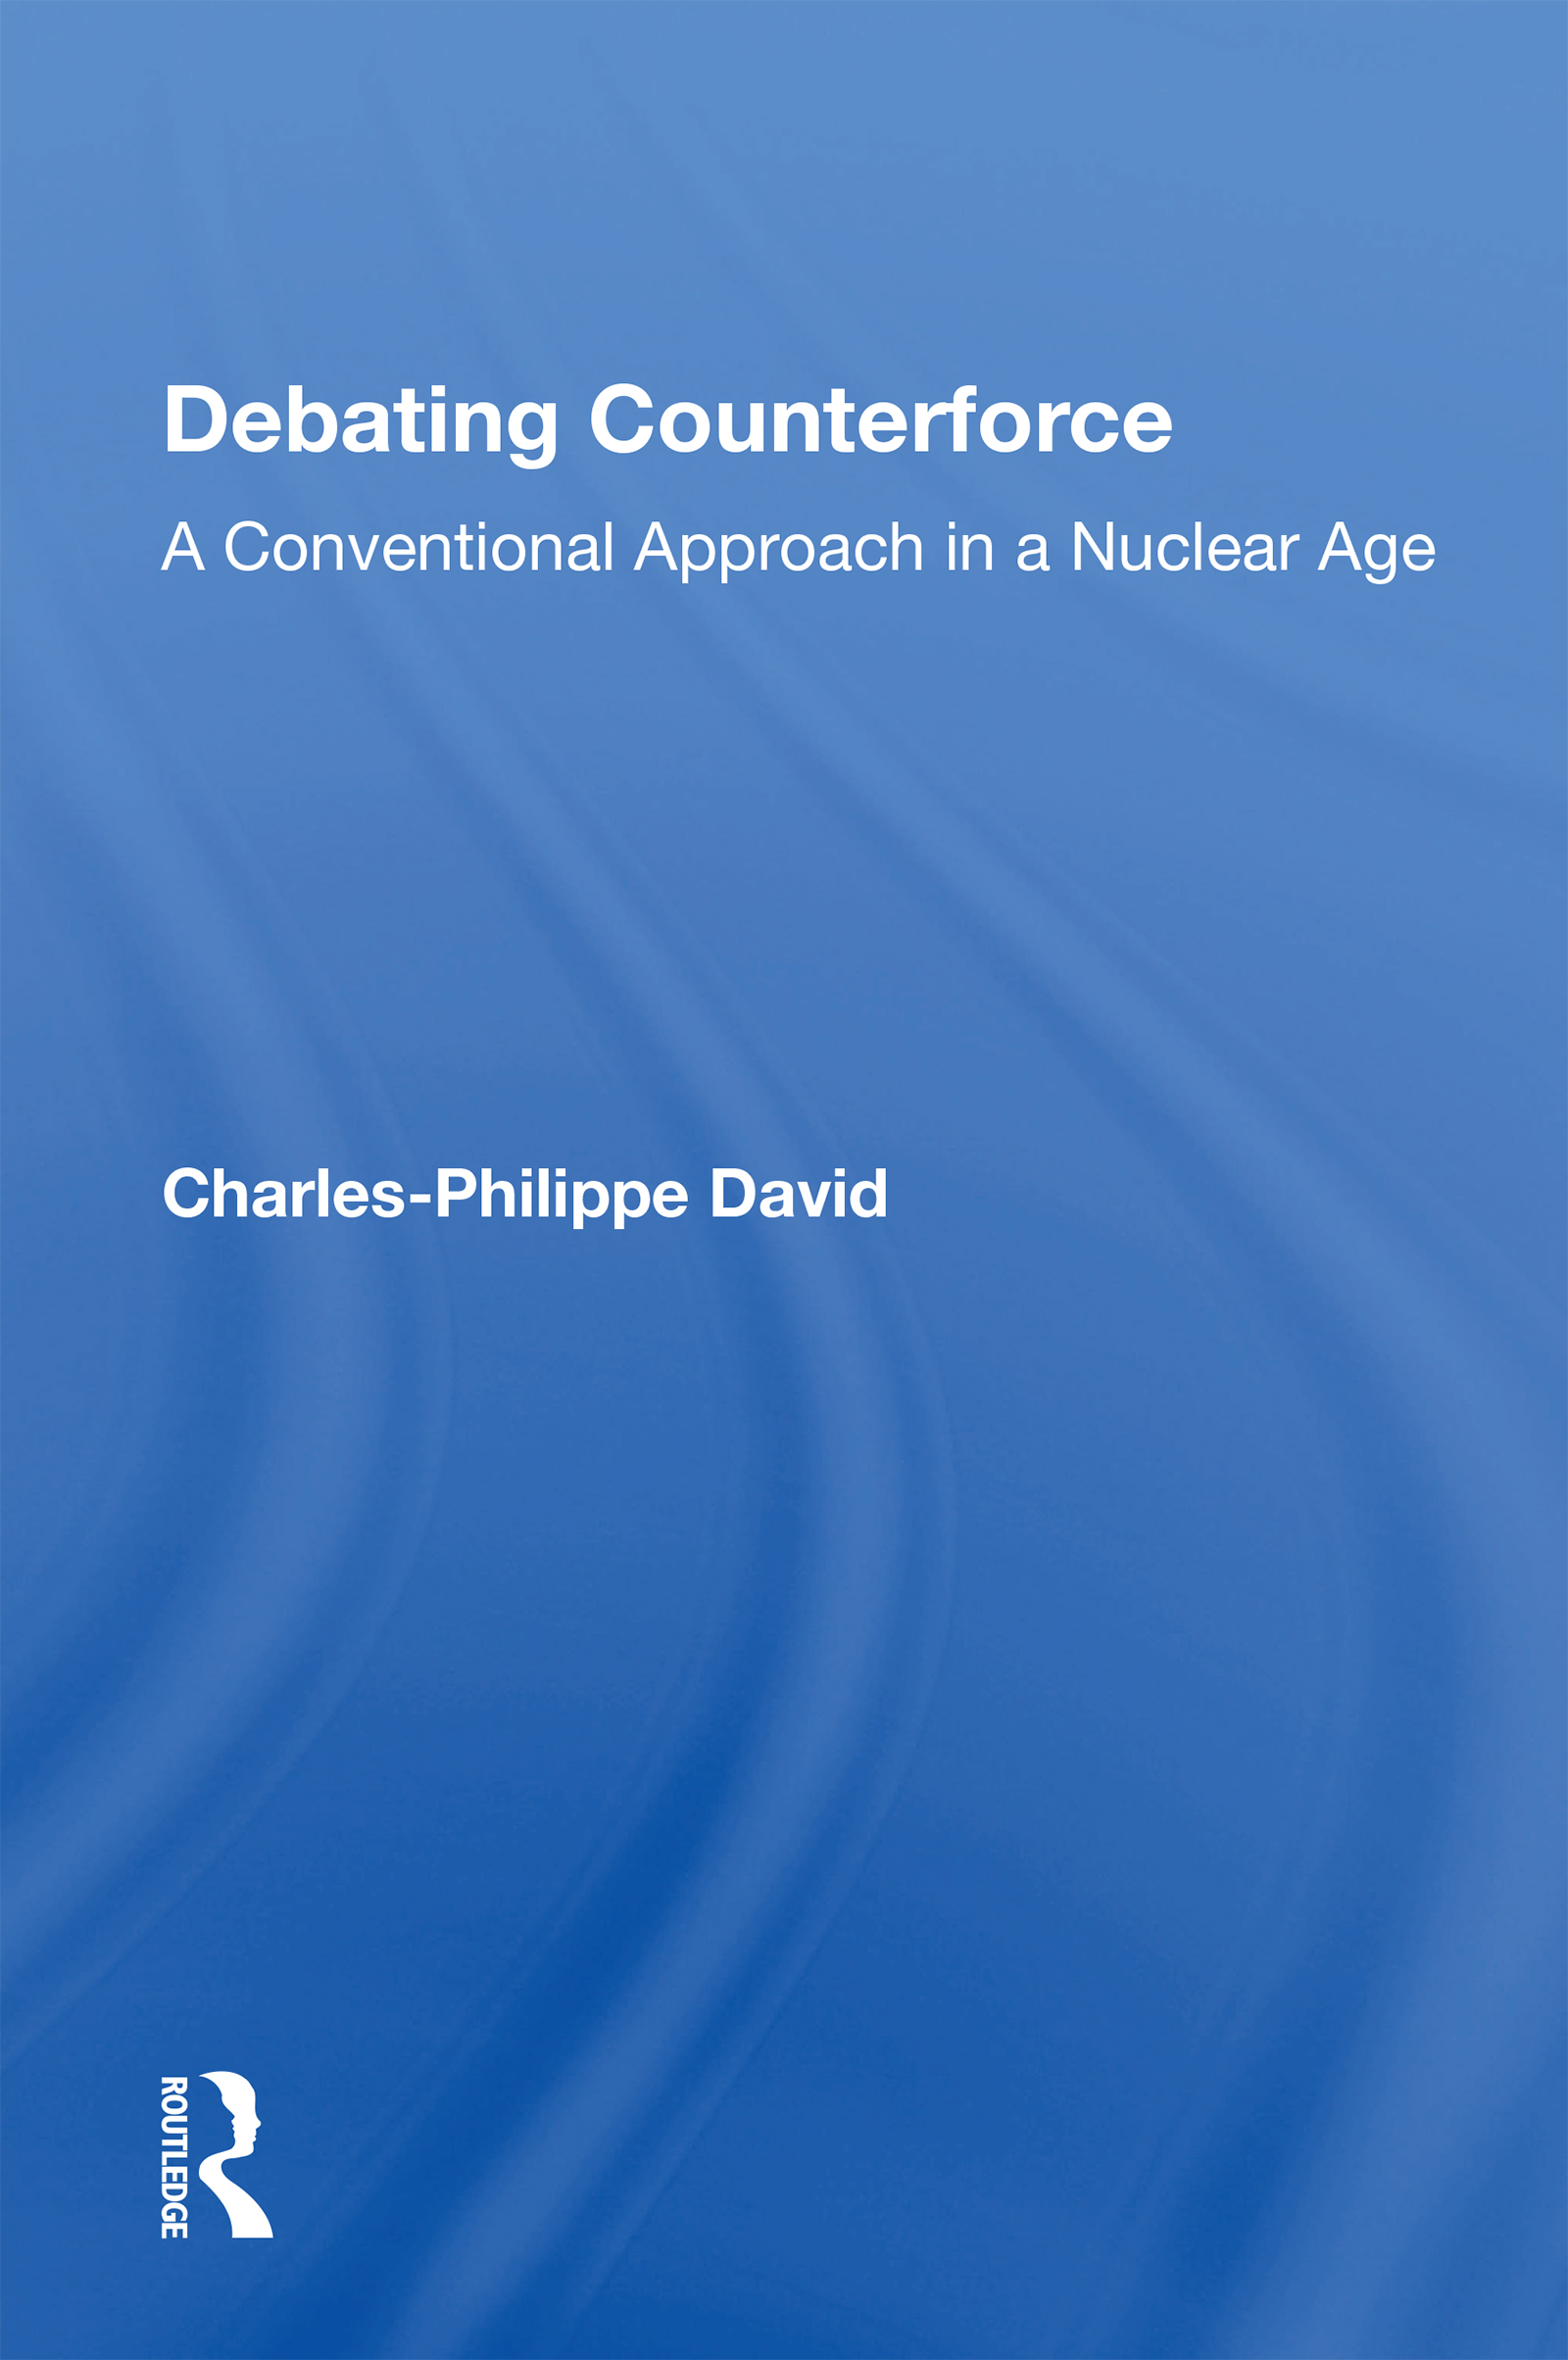 The Technical Approach and the Adoption of Counterforce (1974–1984)